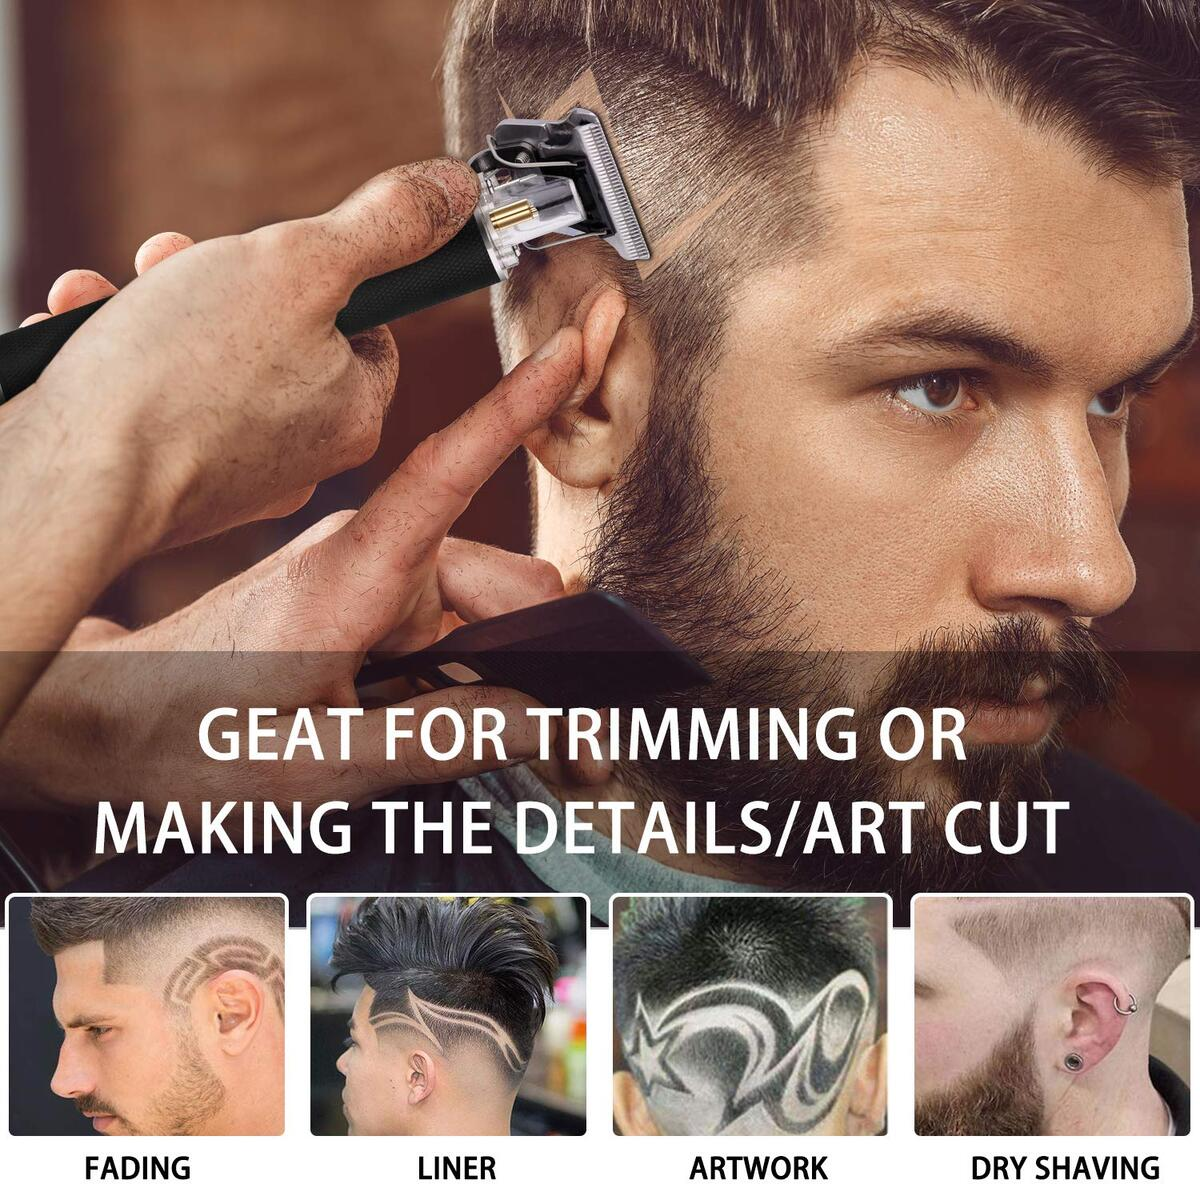 Hair Trimmers for Men - Professional Electric Hair Outliner Clippers Kits Grooming 0 mm Baldheaded Rechargeable Cordless Shavers for Haircut with Guide Combs